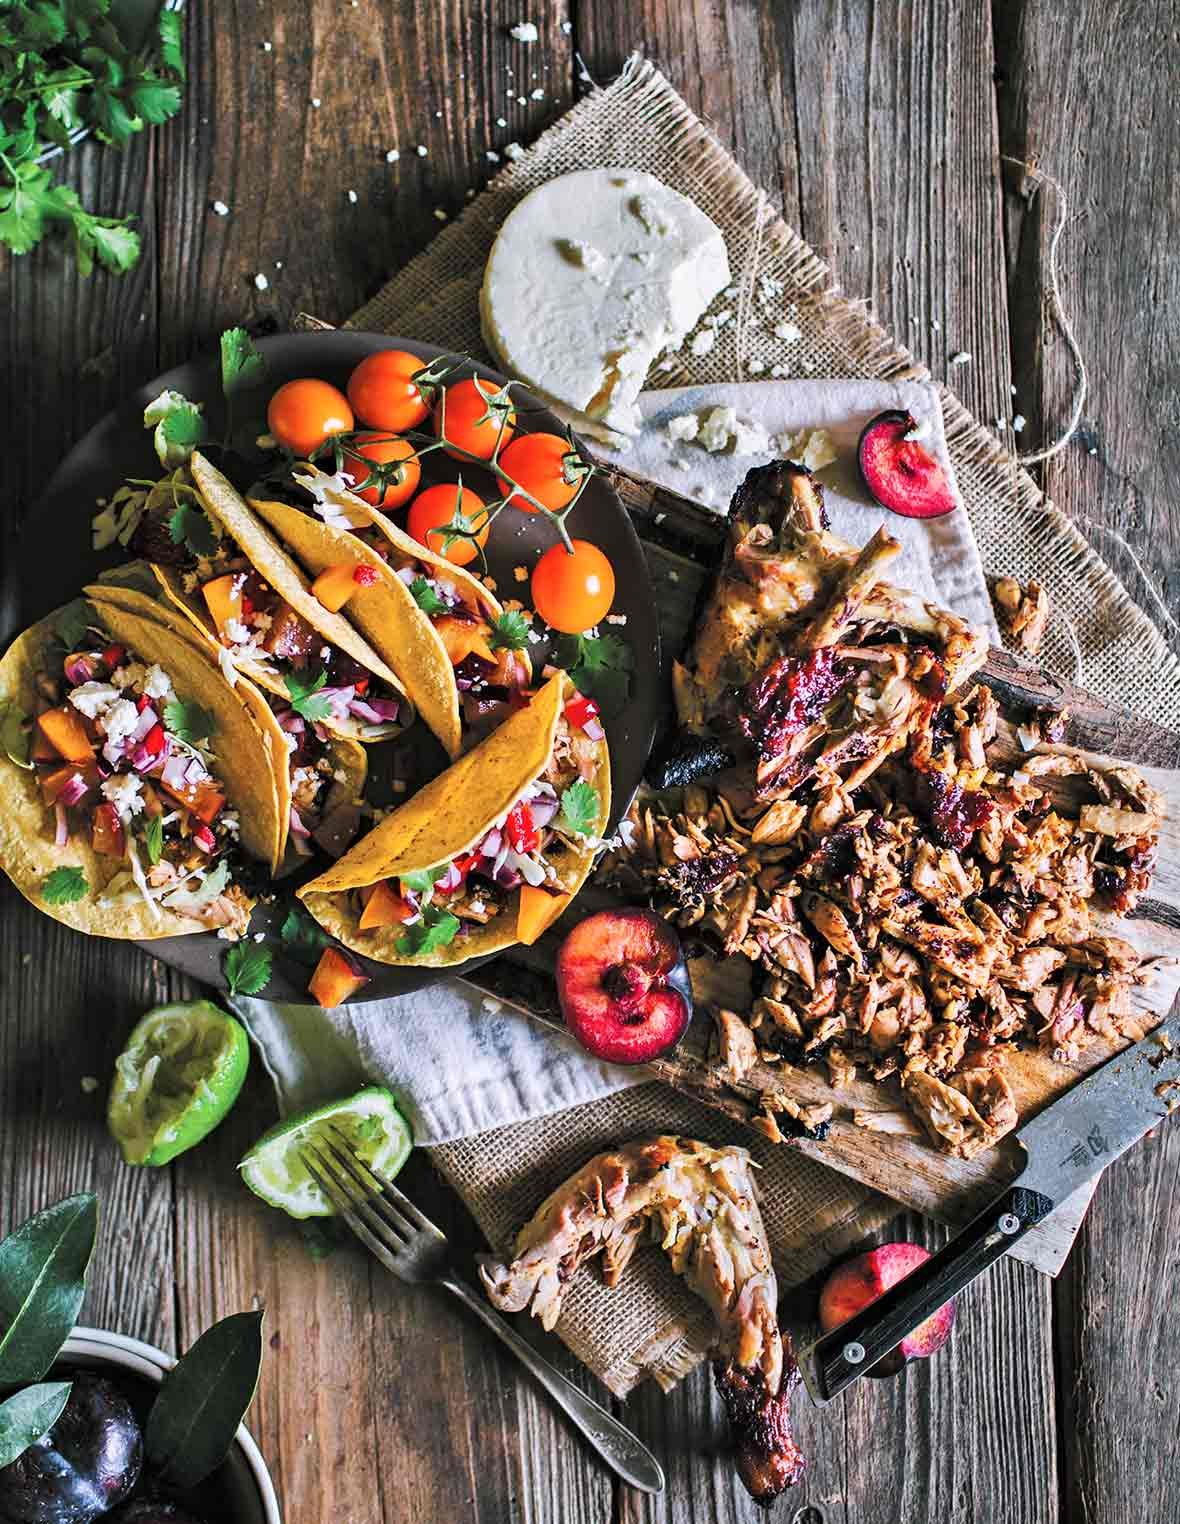 Grilled Chicken Tacos with Fruit Salsa